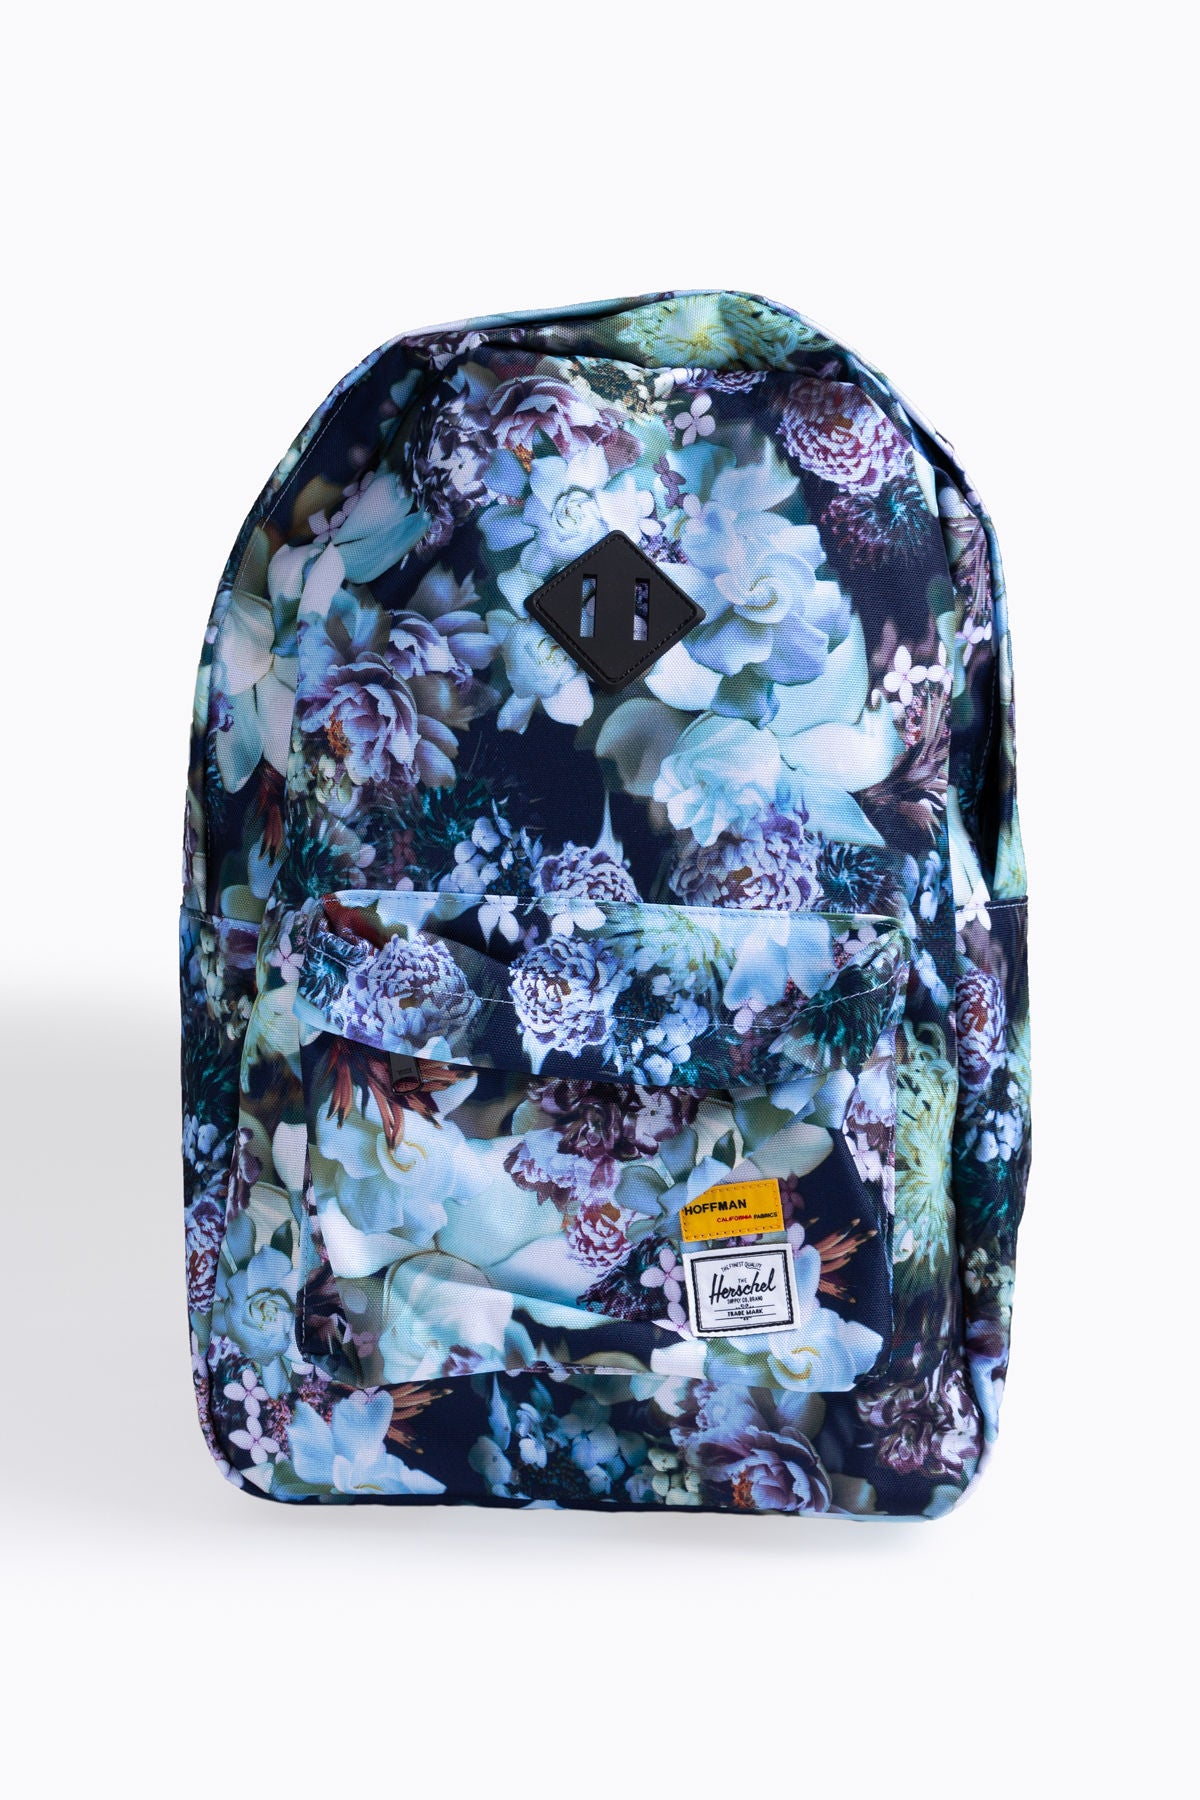 da6c9e0d4c9 Herschel  Heritage Backpack in Winter Floral - Hoffman Collection – Piper    Scoot